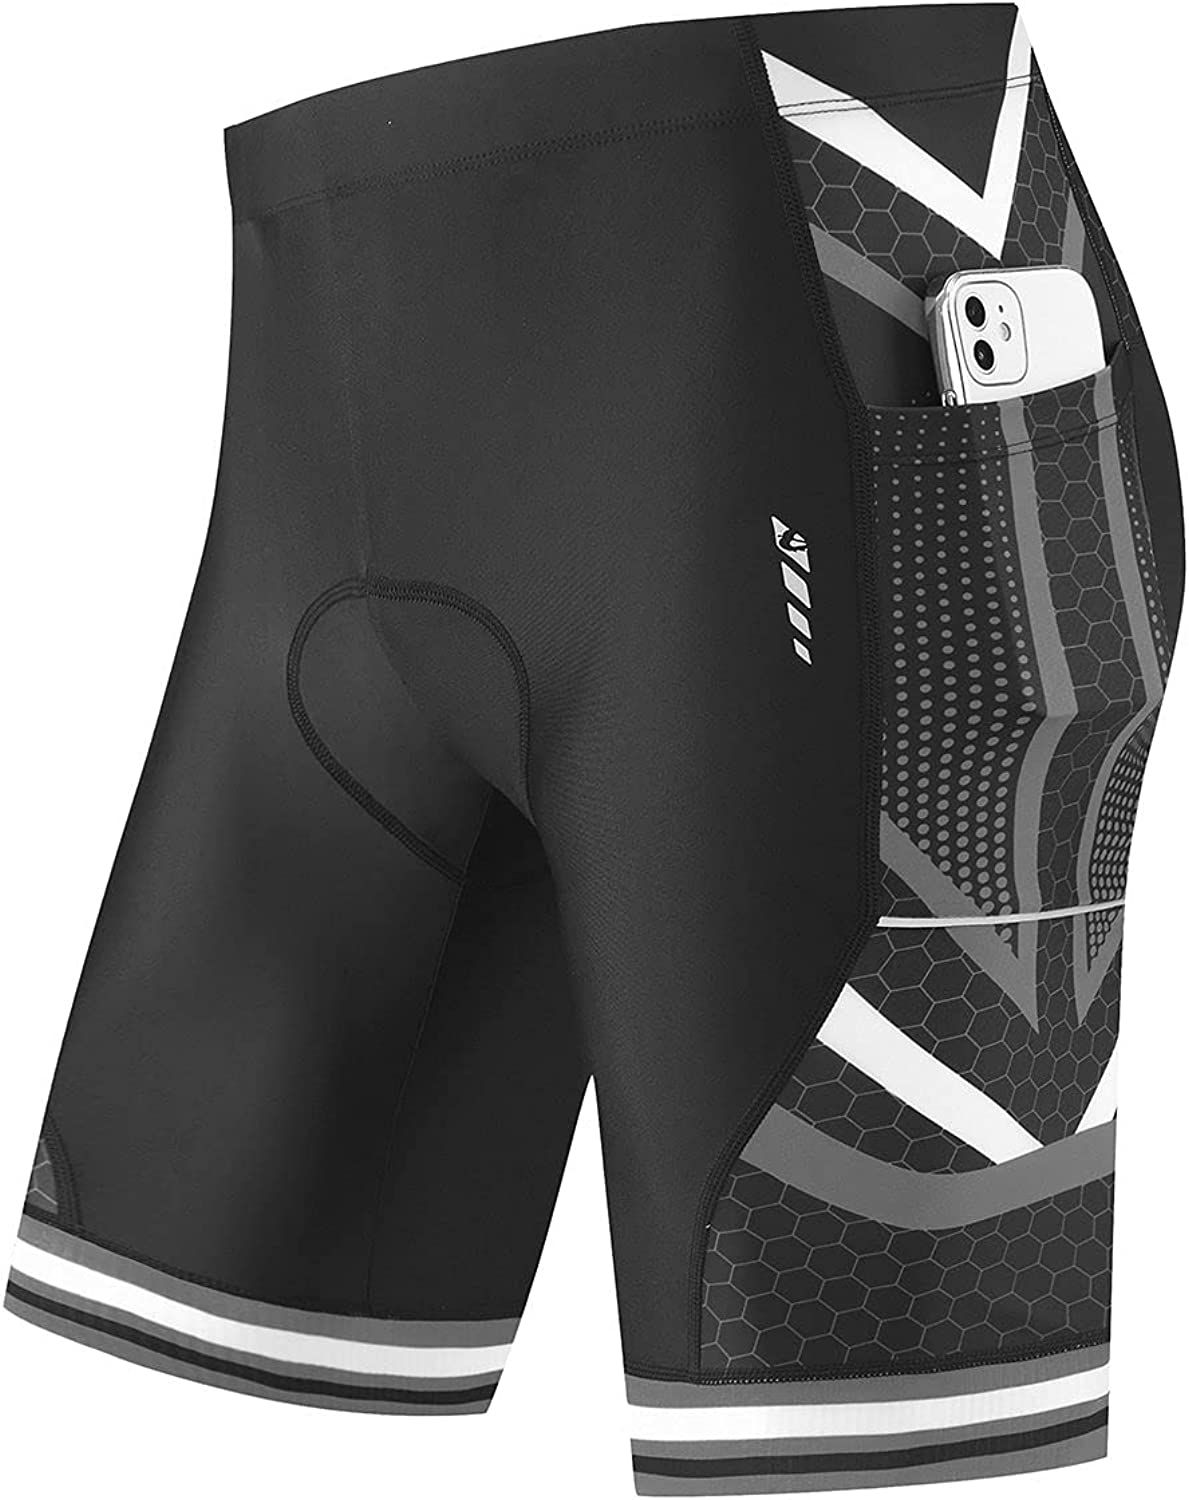 BALEAF Men's Bike Shorts 4D Pockets Bicycle Max 76% OFF Ridin Padded Cycling At the price of surprise